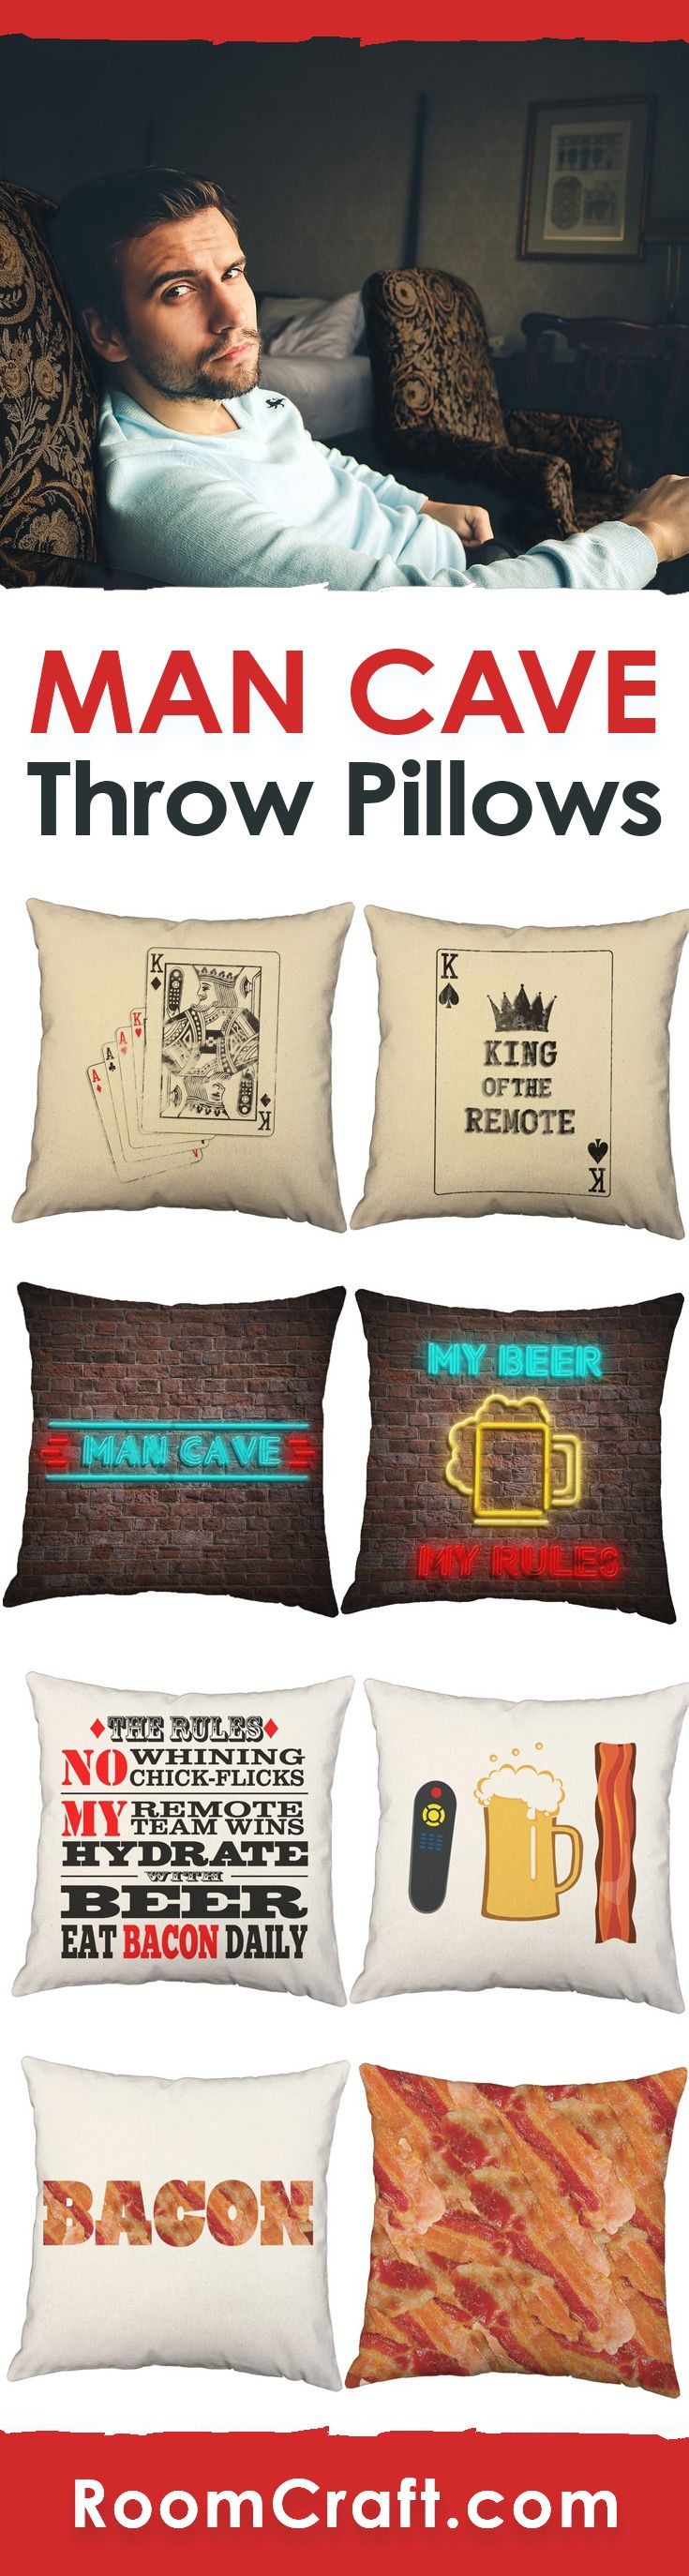 Men Only Beyond This Point! Create your own manly space with these man cave throw pillows. Each design is offered in multiple colors, sizes and fabrics making them perfect for your home, office, or sun room. Our quality pillow covers for guys are made to order in the USA and feature 3 wooden buttons on the back for closure. Choose your favorite and create a truly unique pillow set. #roomcraft